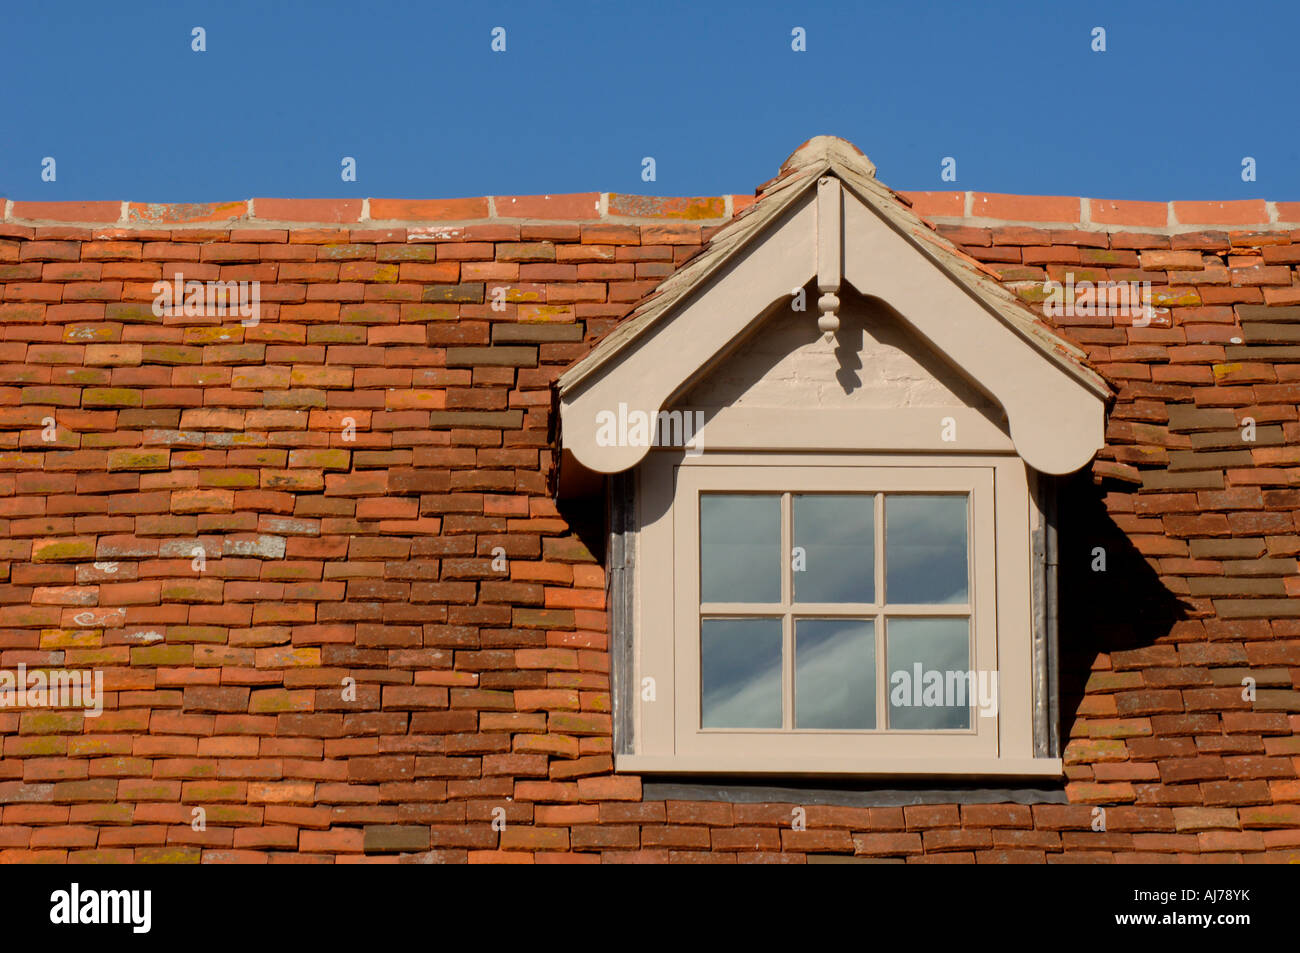 Traditional style tiled roof with dormer window set against a blue sky. Sidlesham, near Selsey. Photograph by Jim Stock Photo